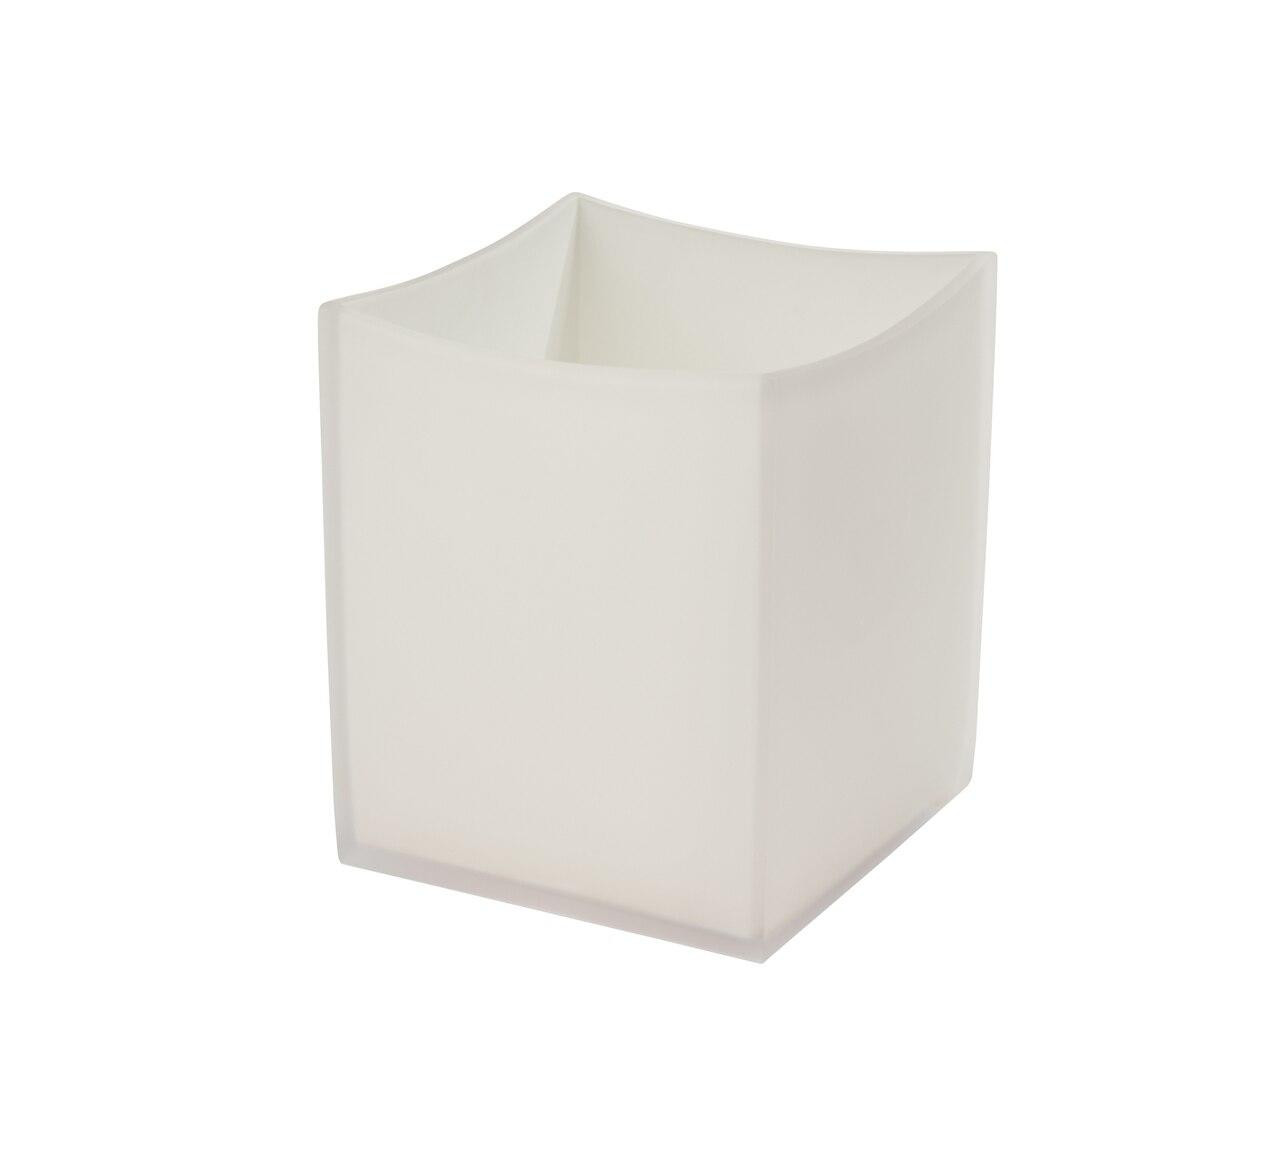 Focus Product Group Solid 4 Piece Modern Frost Bath Accessories Set - White